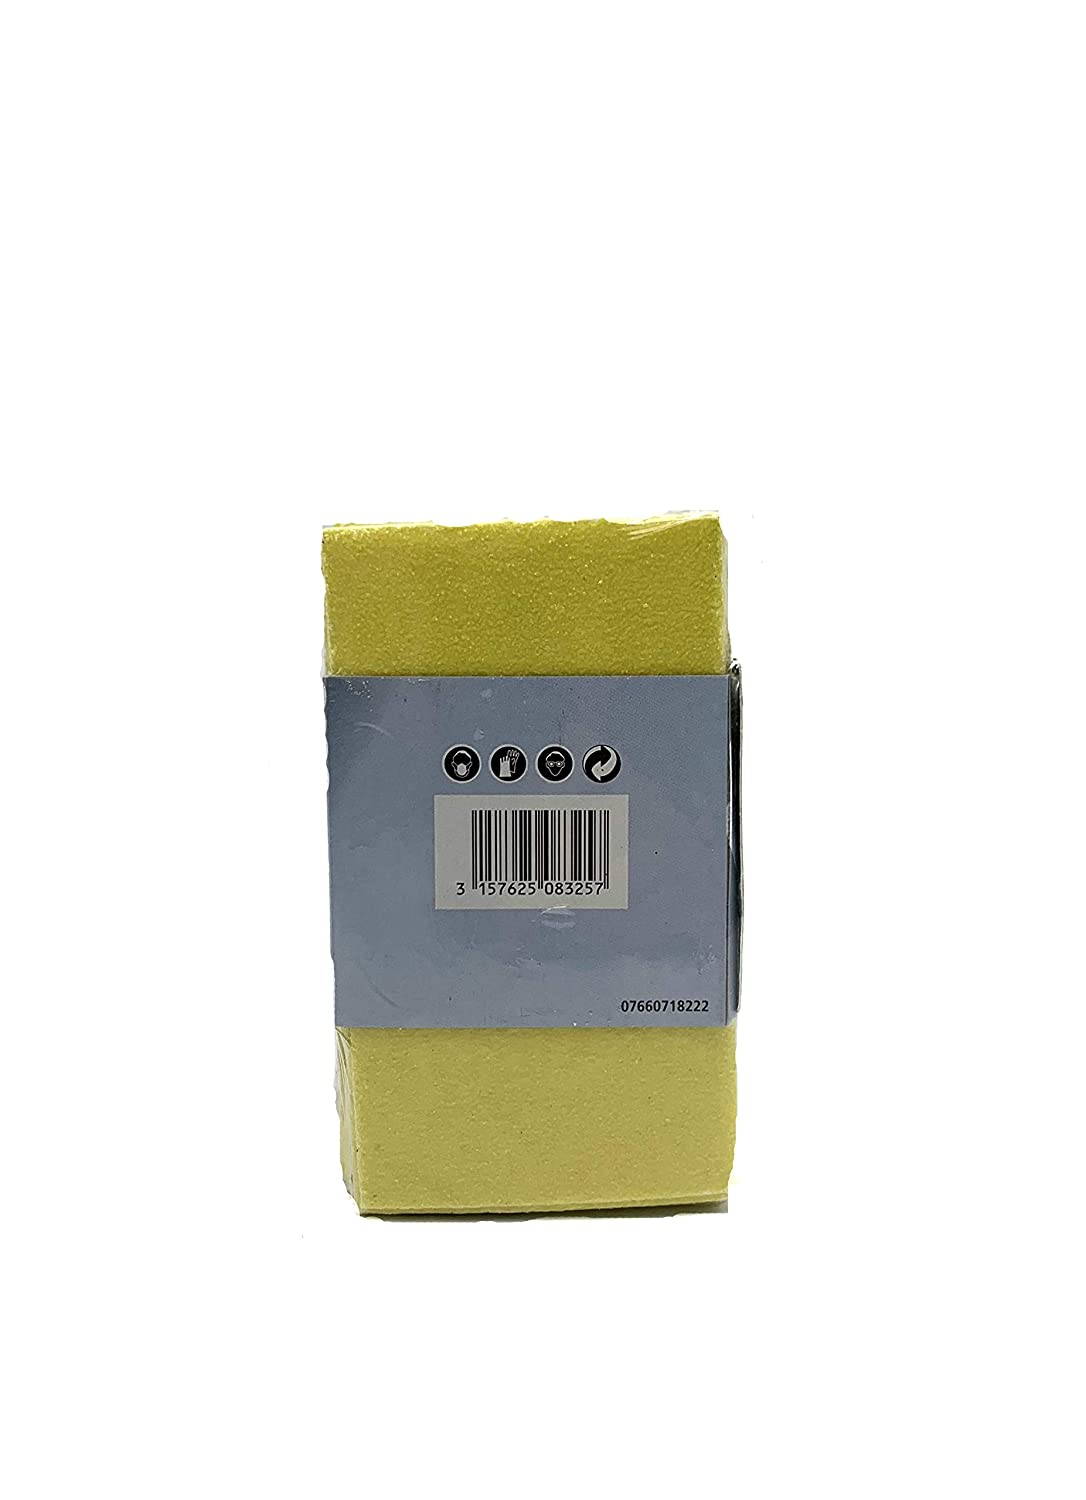 5 Free Norton Easy Sand Sanding Block with 15 Sandpaper Sheets